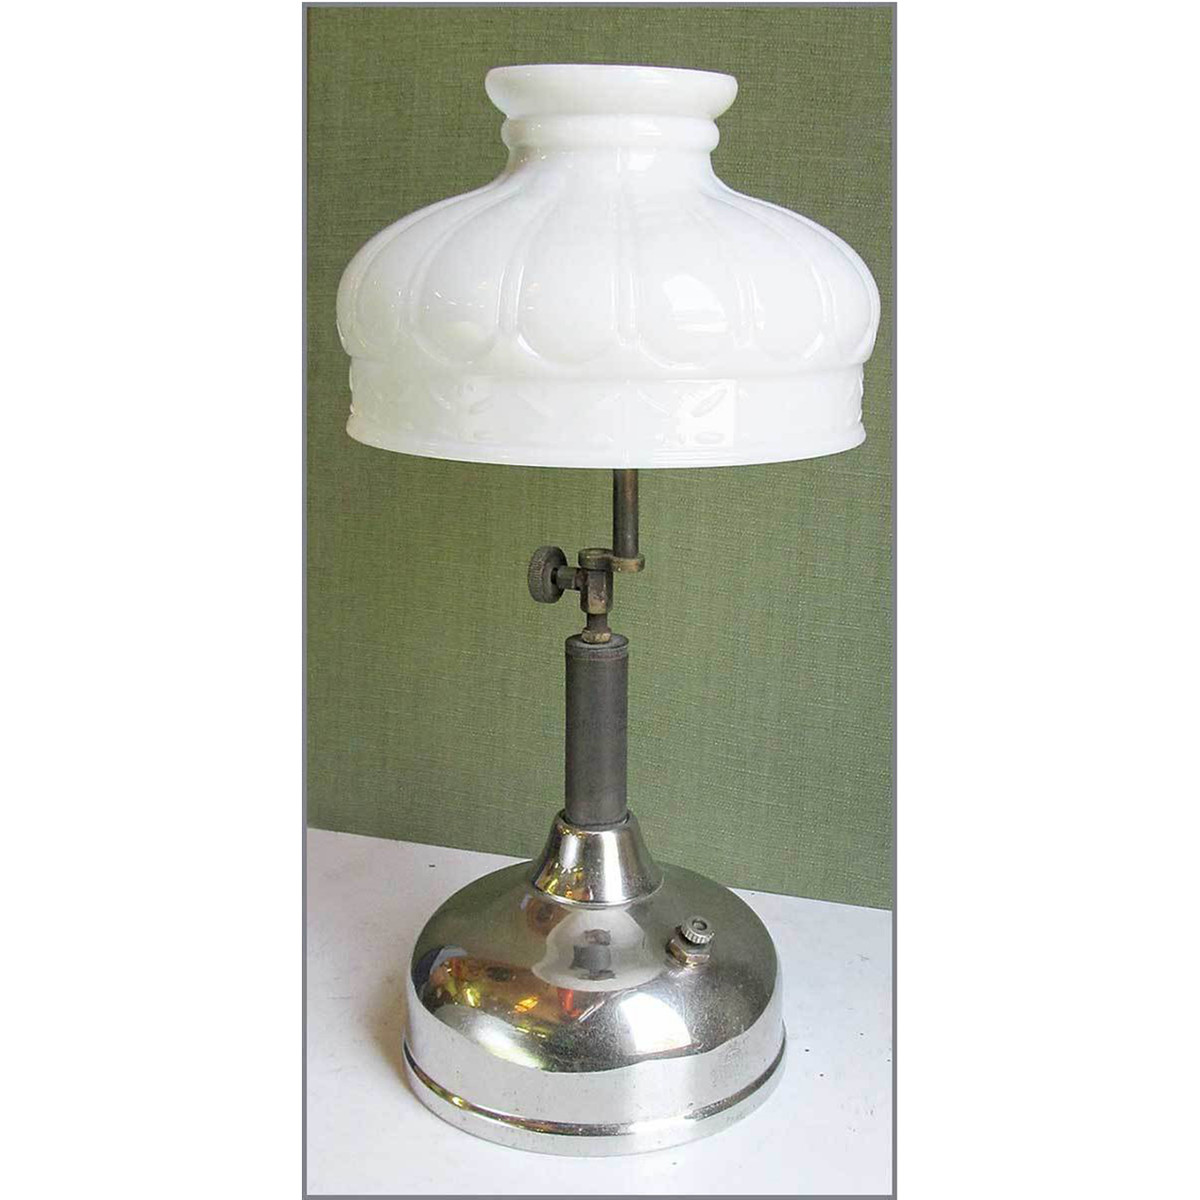 L13142 - Antique Colonial Revival Coleman Table Lamp